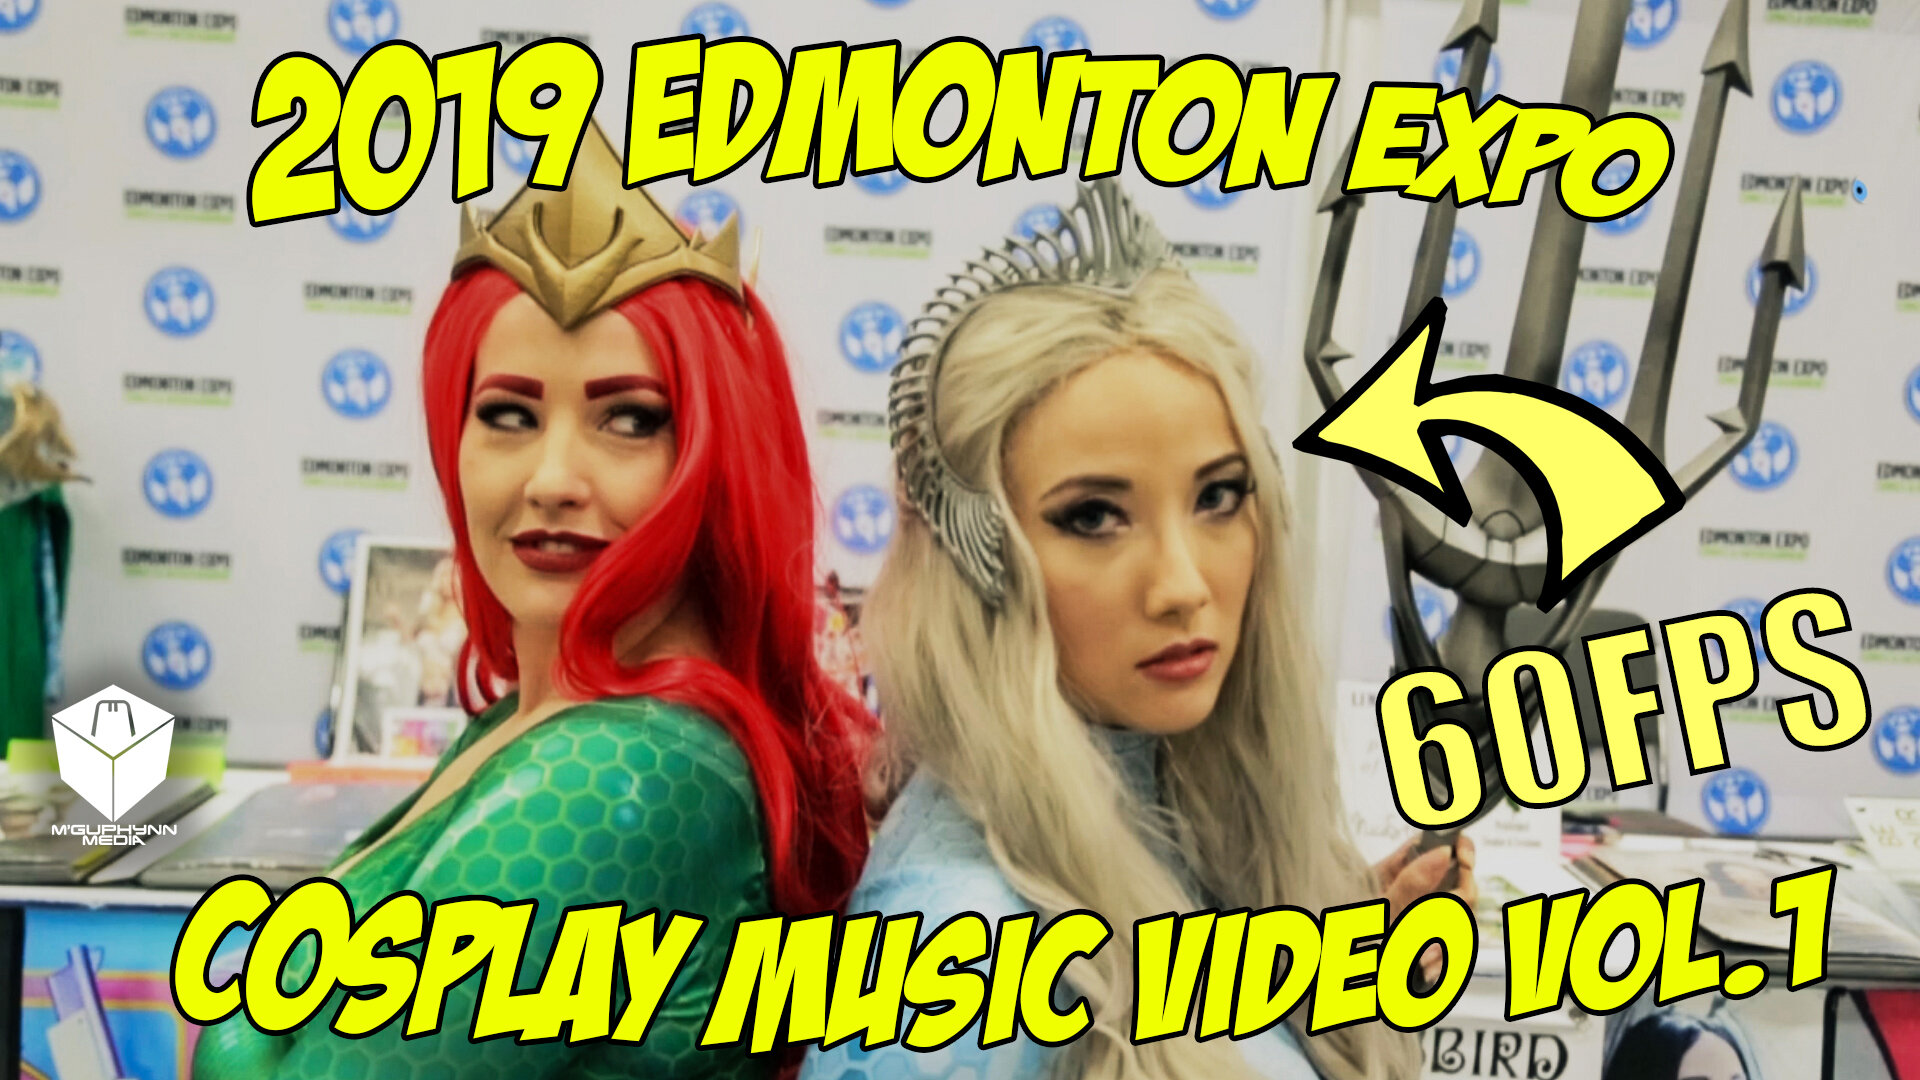 2019 Edmonton Expo Cosplay Music video